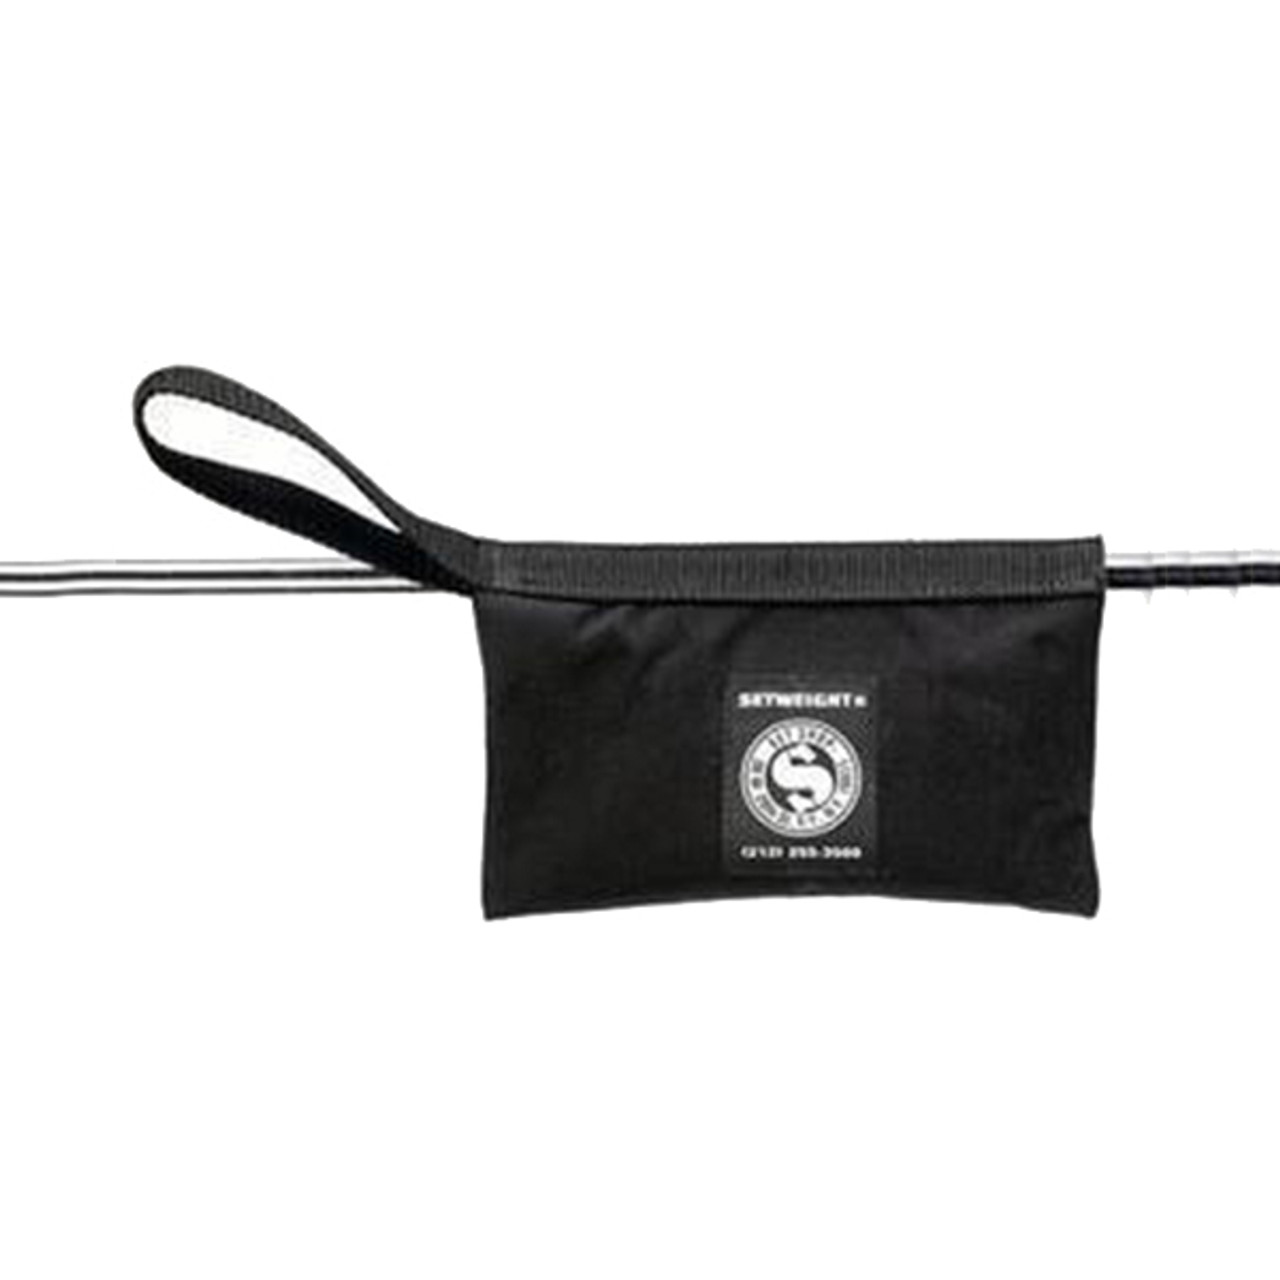 Setweight - Junior Weight - 8 lb Sandbag (Black)